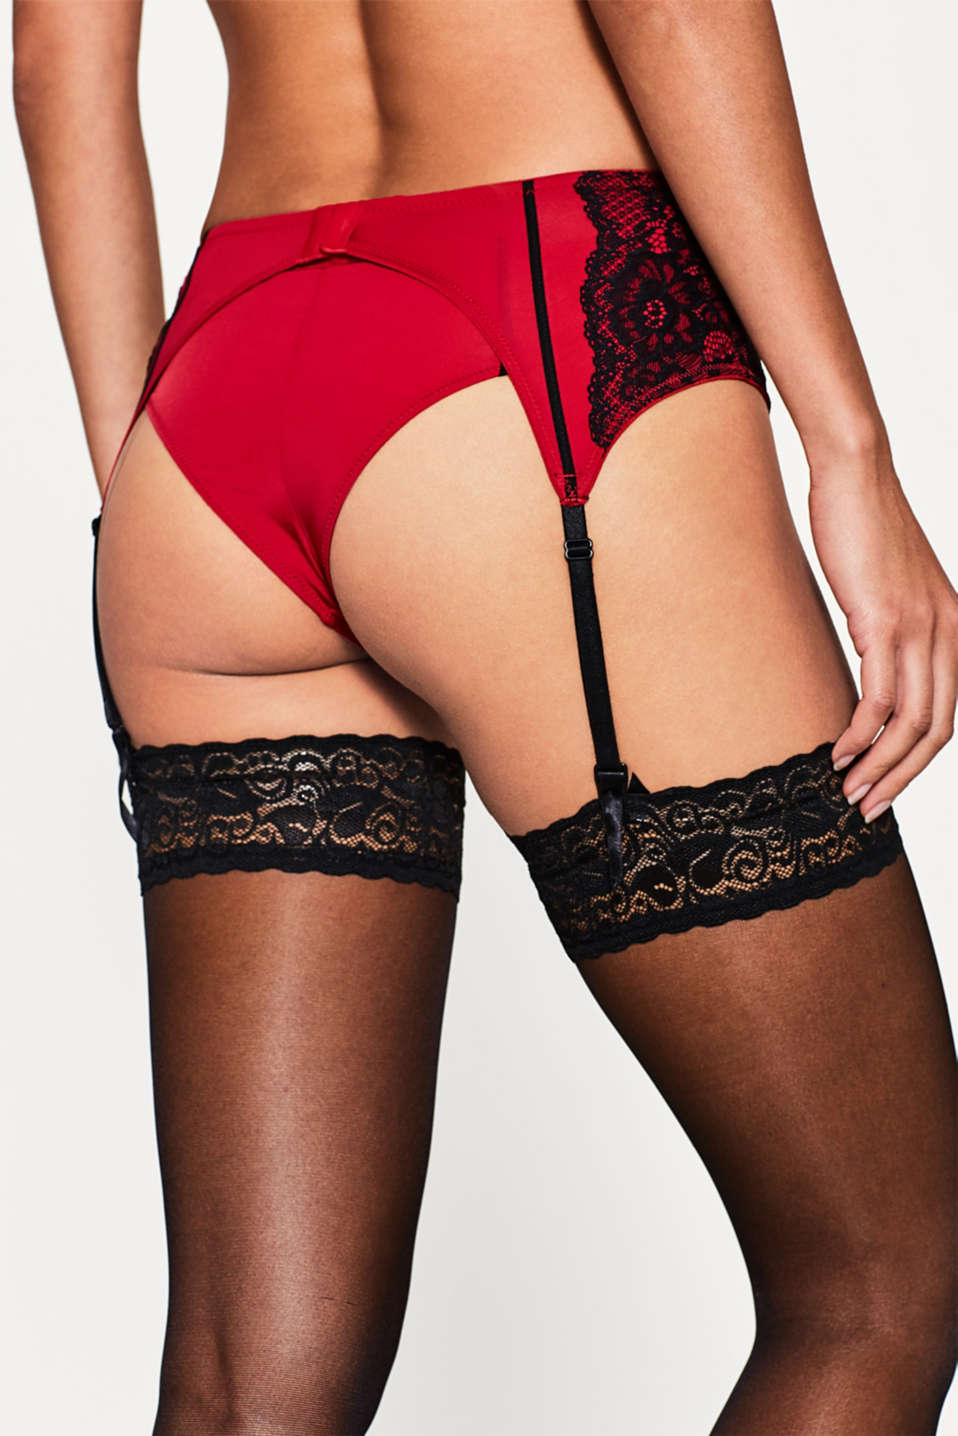 Two-tone suspender belt with lace